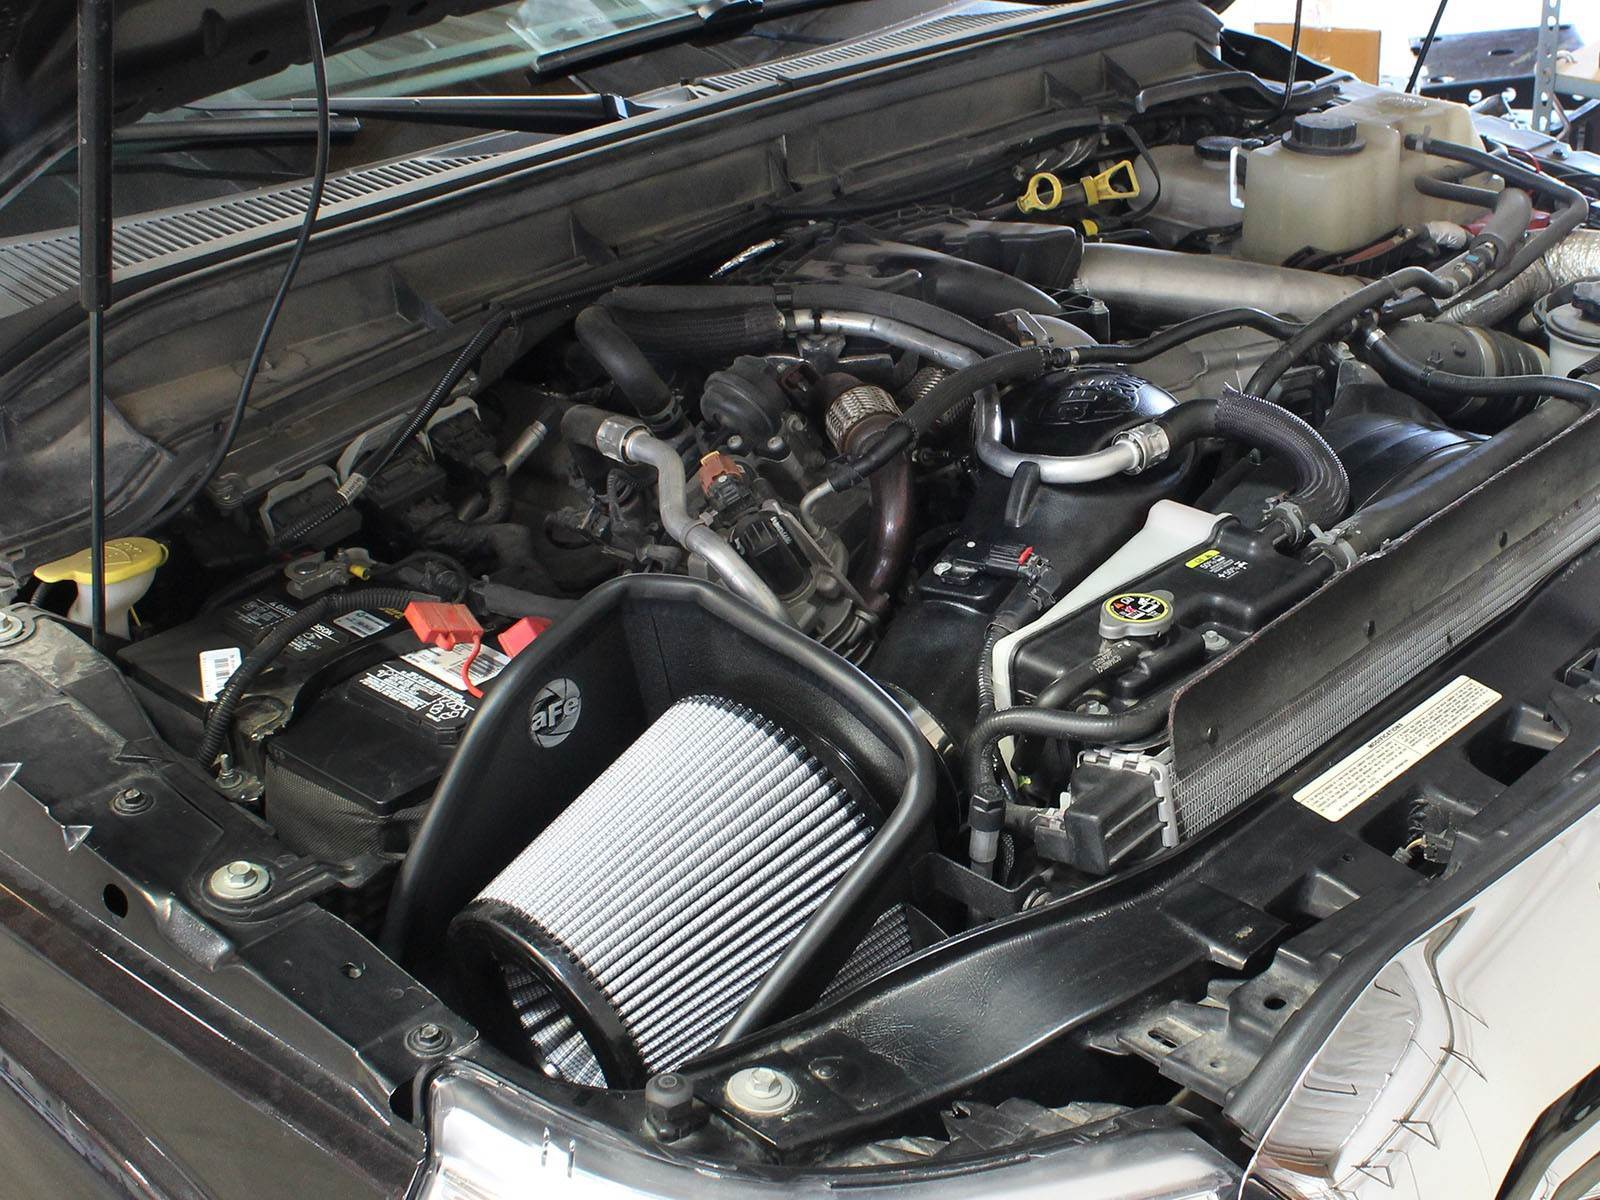 51-11872-1 - aFE Pro Dry S Performance Cold Air Intake System for your 2011-2016 Ford Powerstroke 6.7L Diesel - Installed